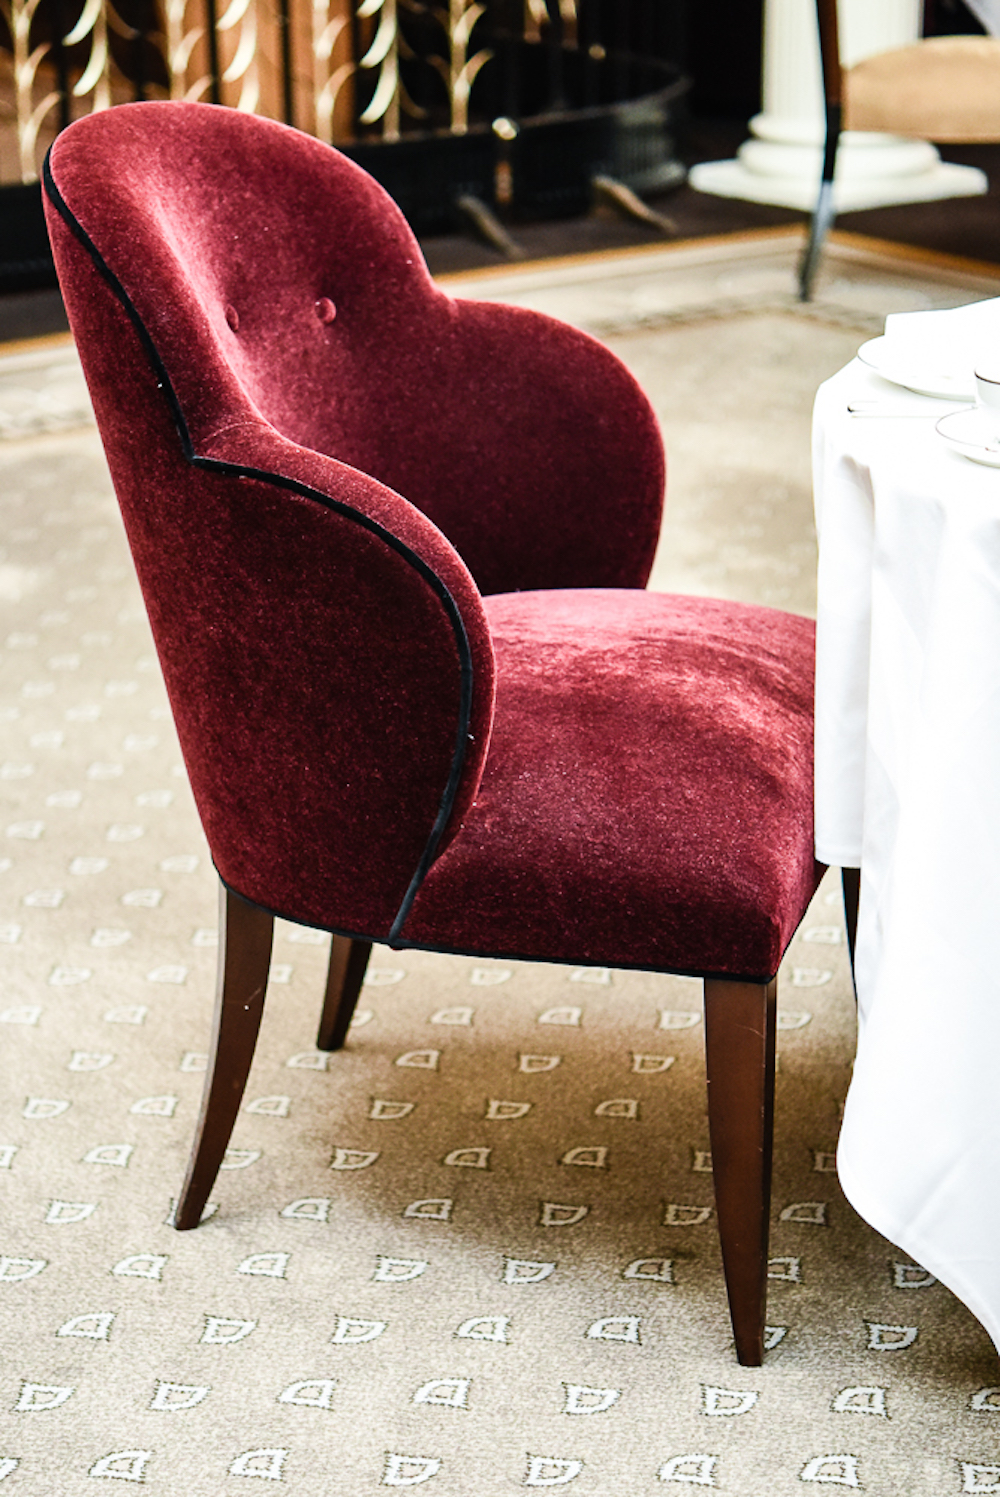 Bespoke chair, Georgian restaurant, harrods